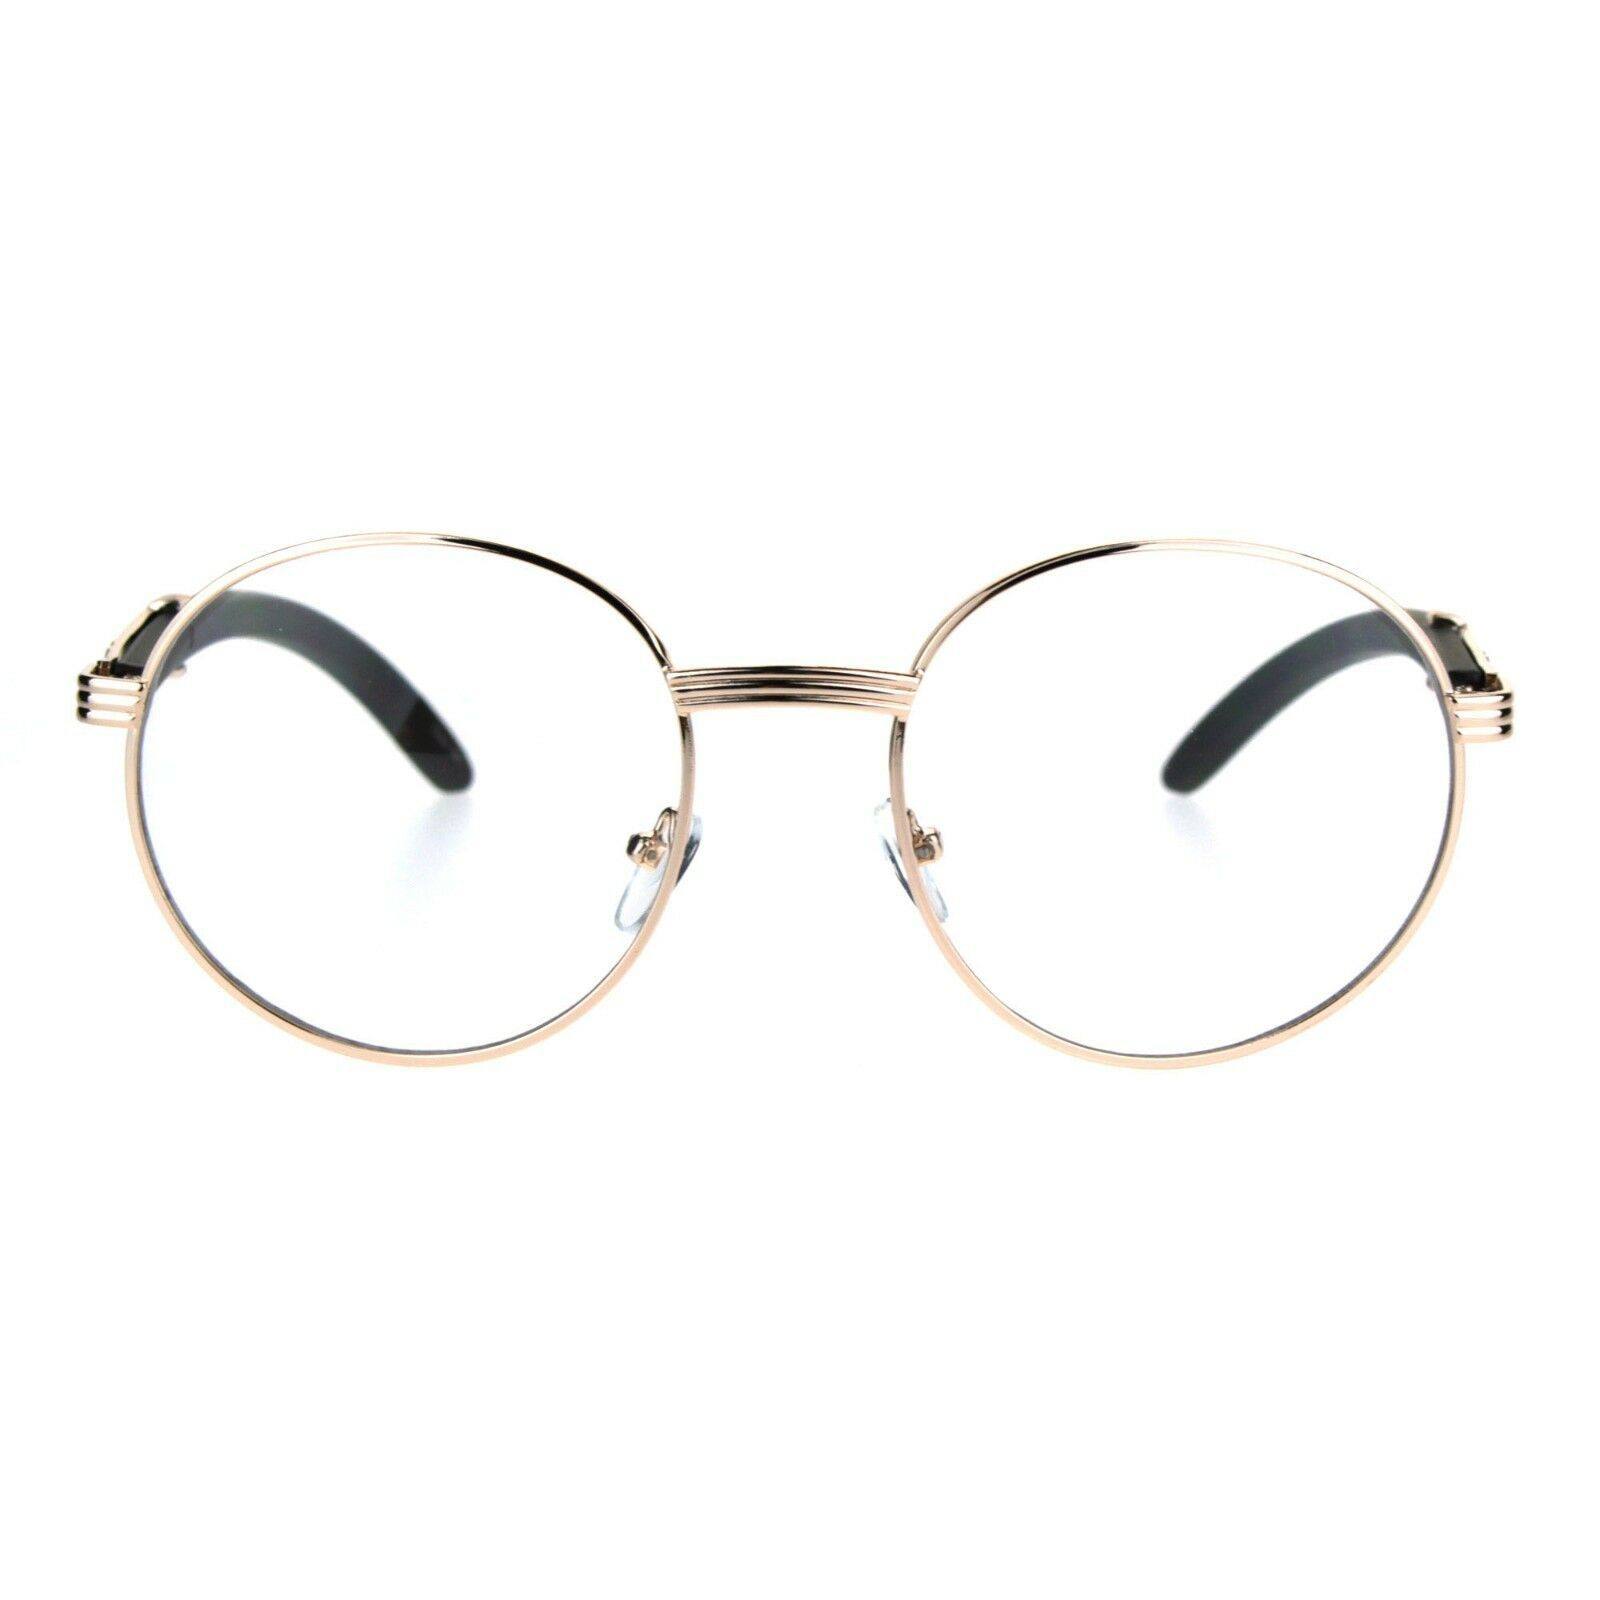 Round Clear Lens Glasses Wood Buffs Stylish Fashion Eyeglasses UV 400